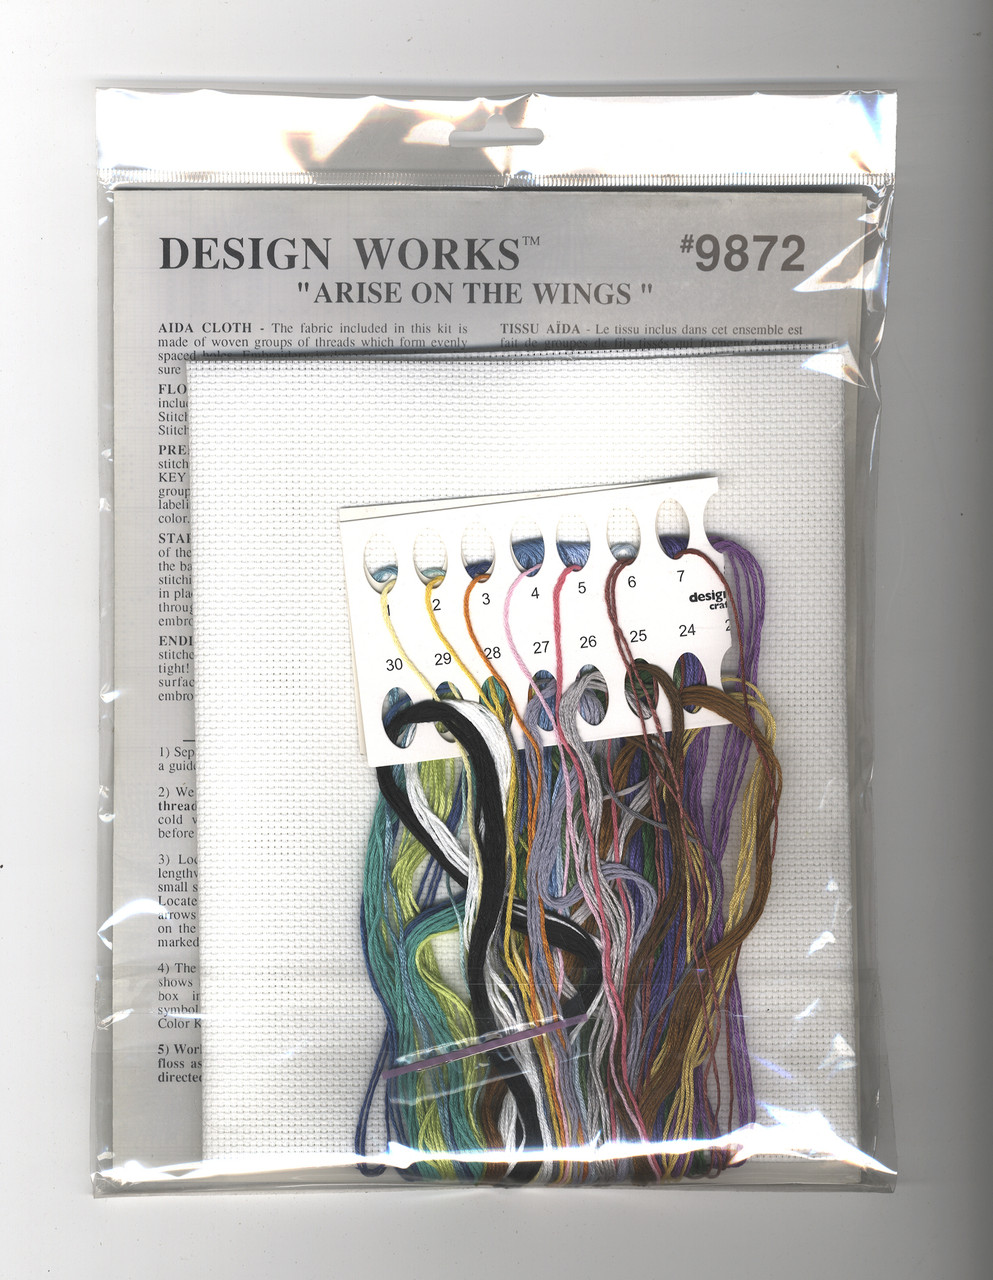 Design Works - Arise On The Wings